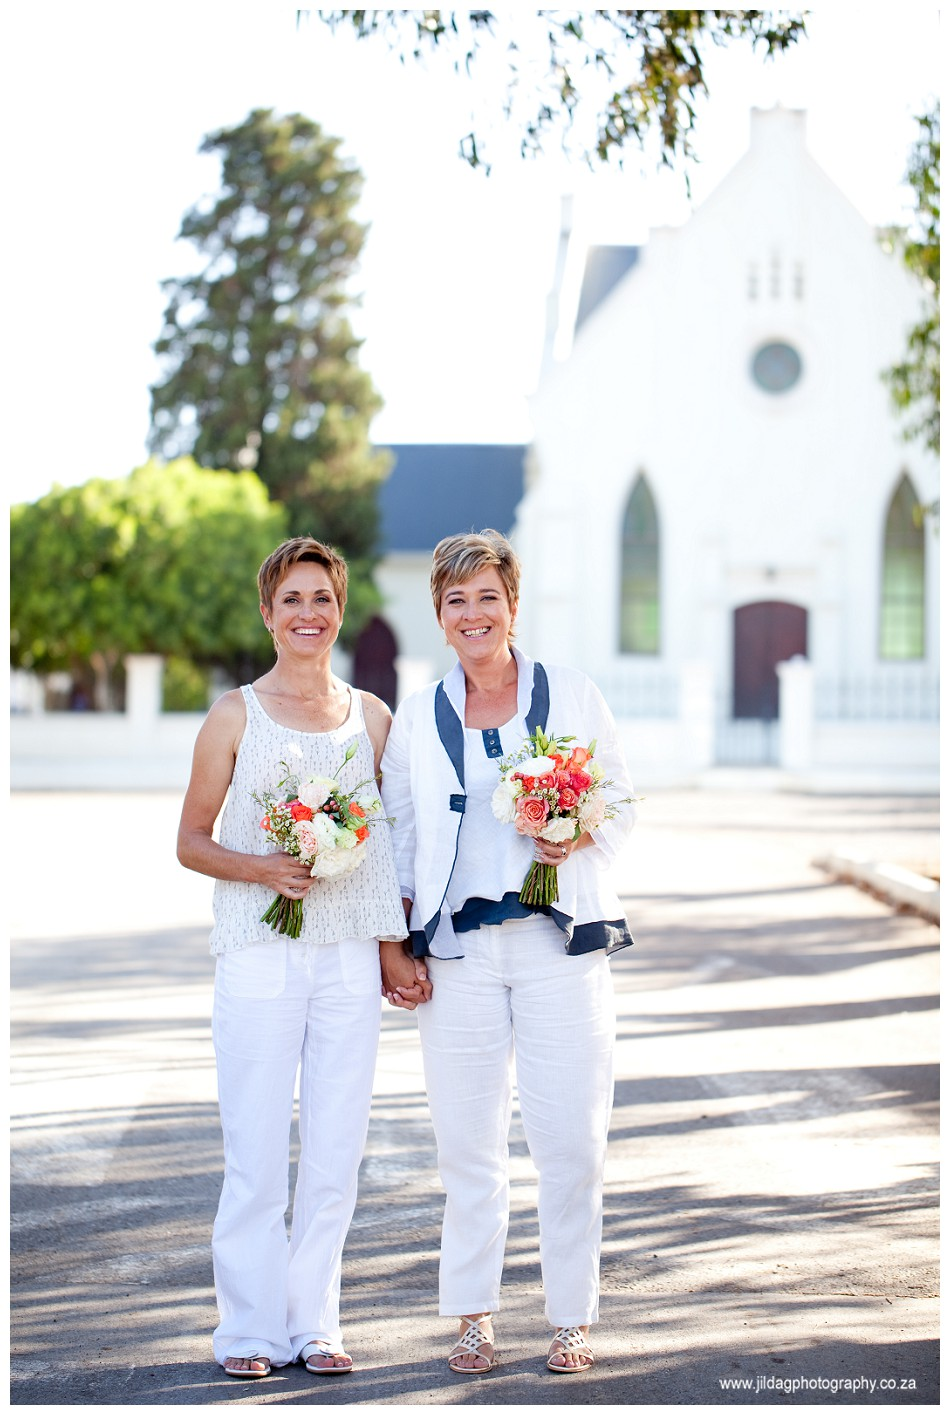 De Malle Meul - Same sex wedding - Jilda G Photography (63)